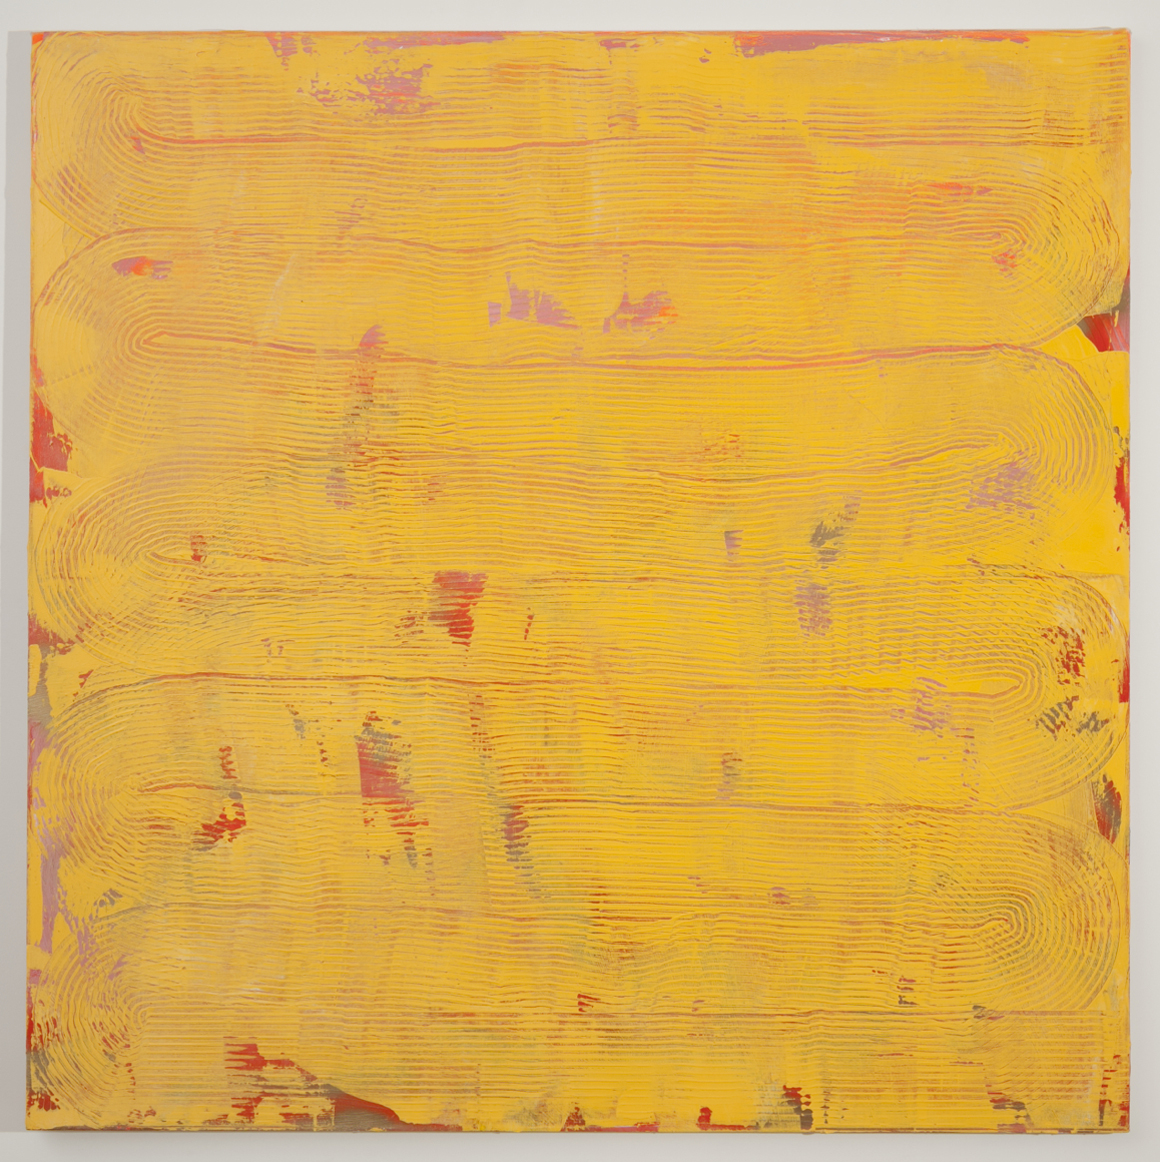 <p><em>Yellow</em><span class='media'>acrylic and spray paint on canvas</span>72 x 72in<br>2014<br><a class='inquire' href='mailto:info@gildargallery.com?subject=Artwork Inquiry ABAT0008&body=I am interested in finding out more about Yellow by Adam Bateman'>Inquire</a></p>